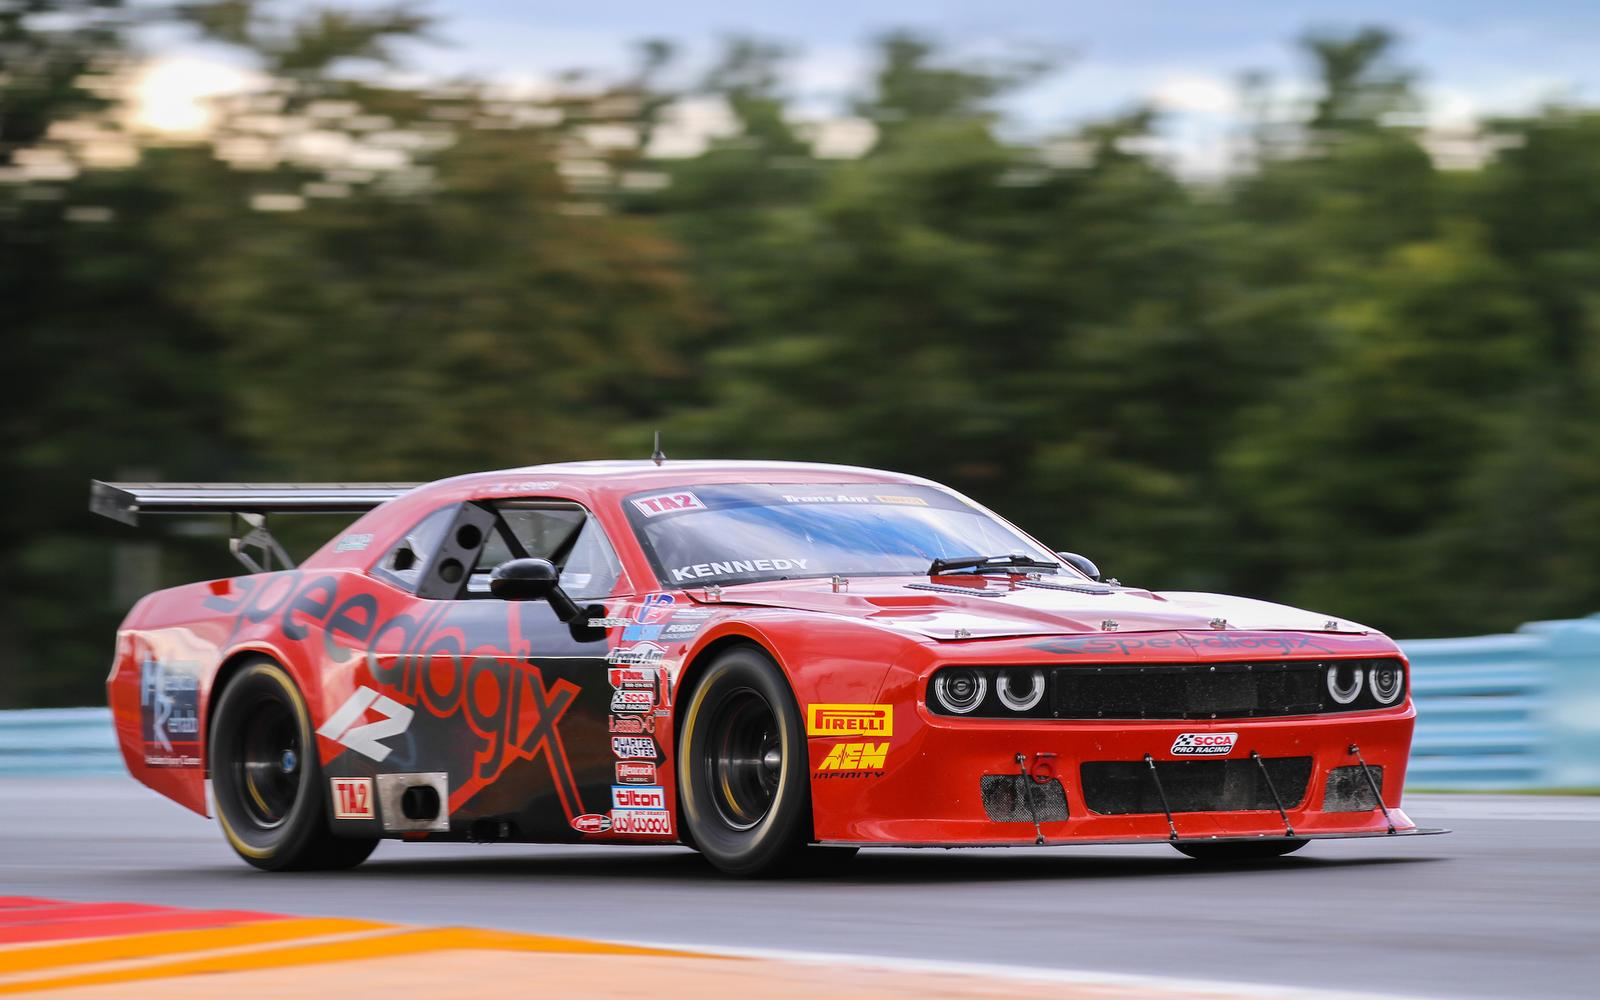 Prefix Corporation and Stevens-Miller Racing Join to Attack with HEMI Power